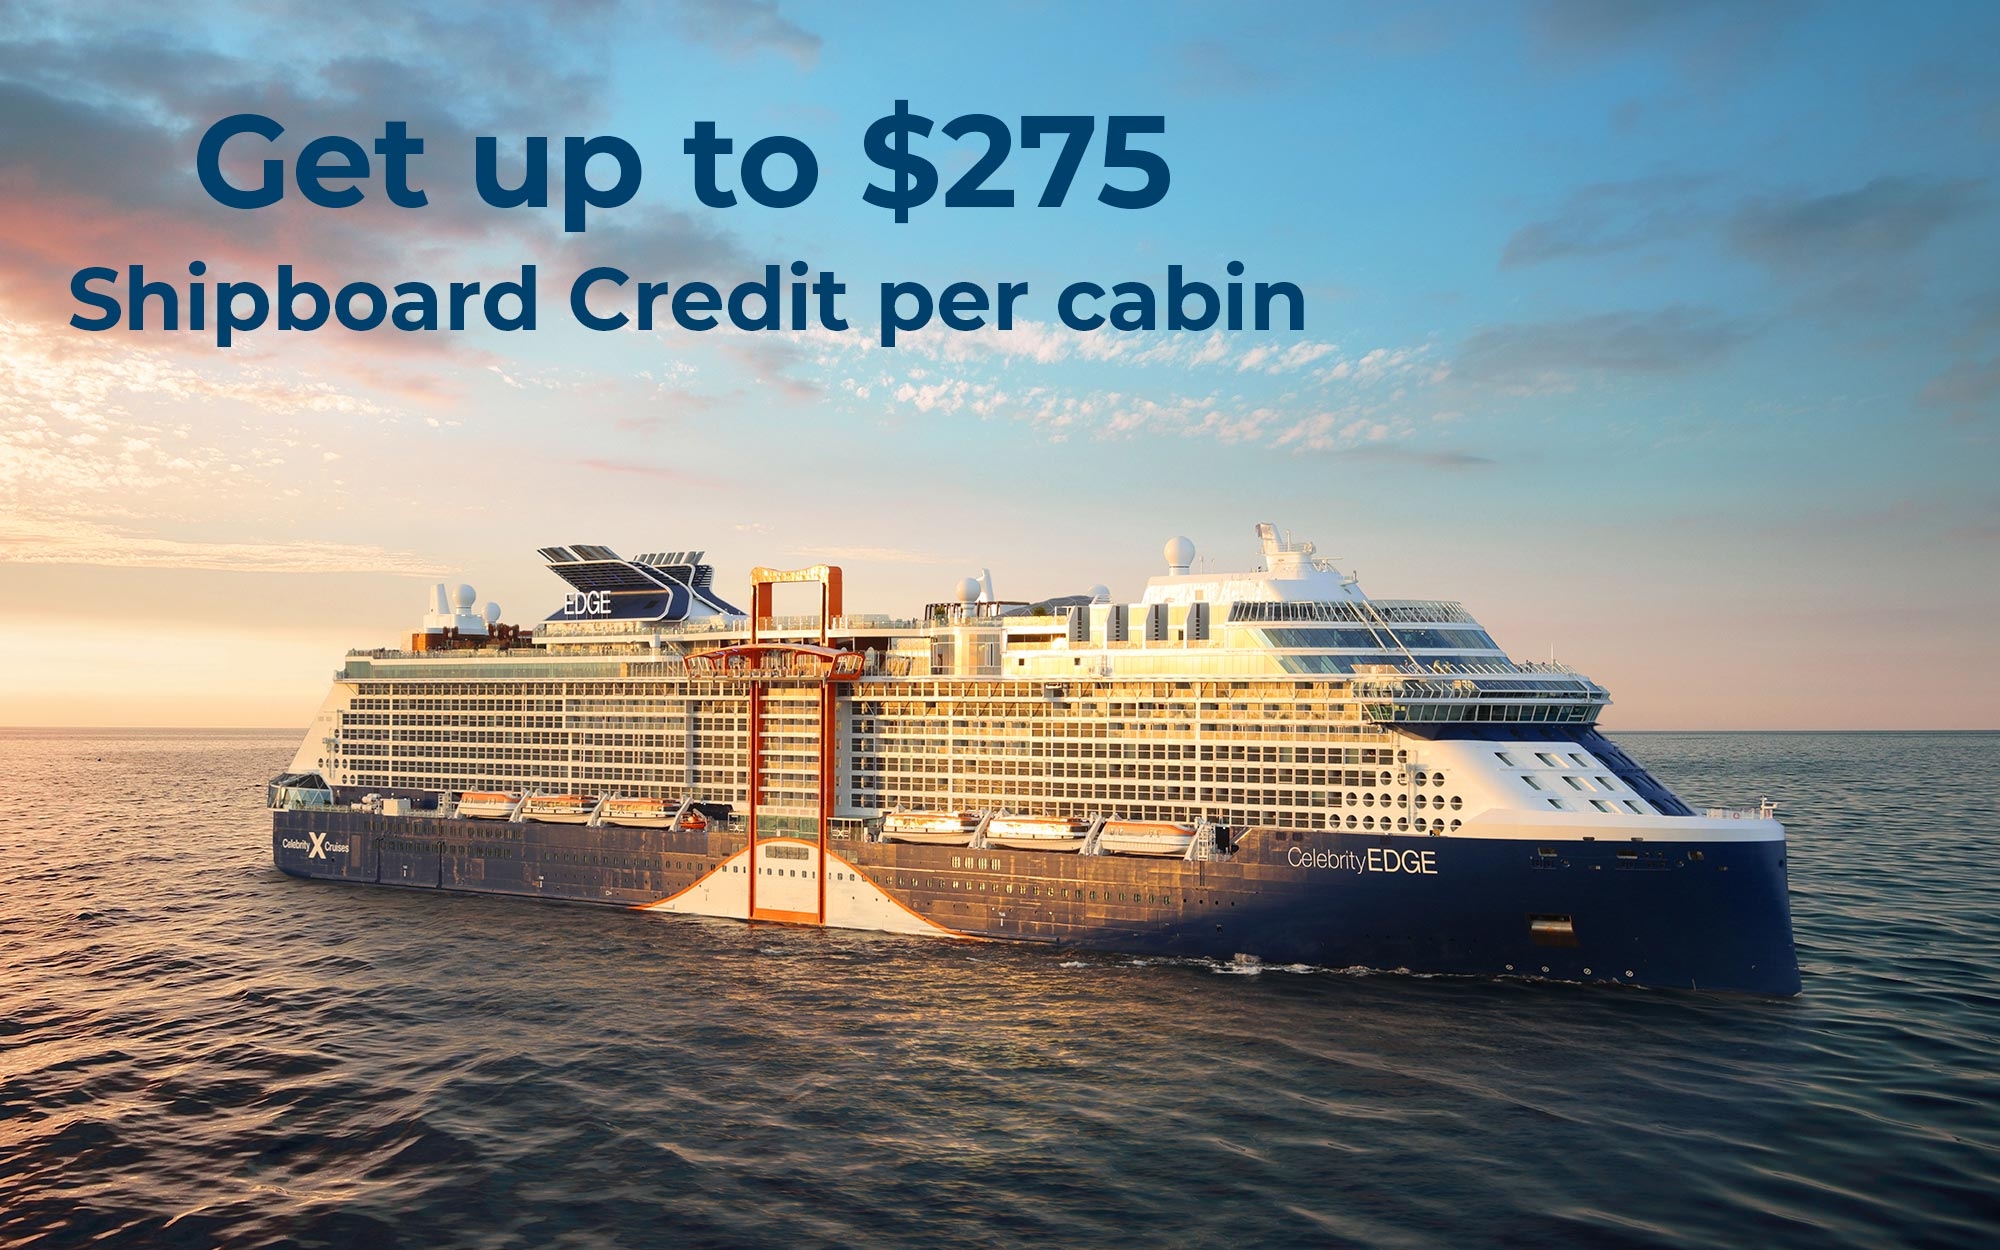 Book a trip with your family and Get up to $275 Shipboard Credit when you book 6 cabins or more!